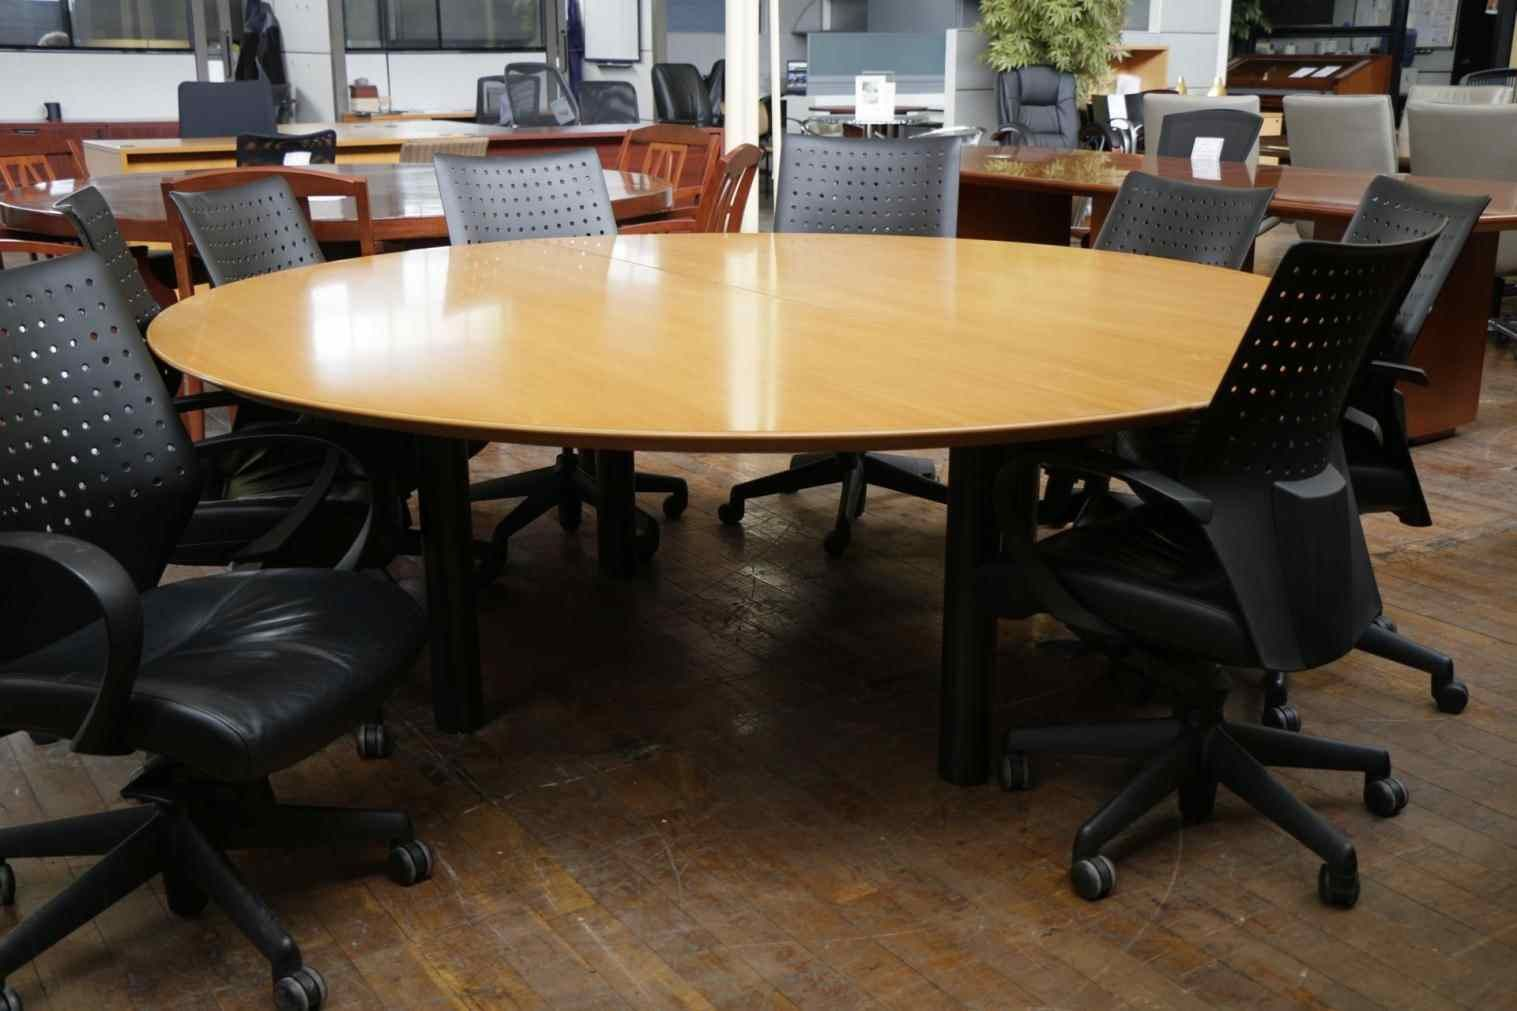 Round Conference Table Best Way To Paint Wood Furniture - 72 round conference table